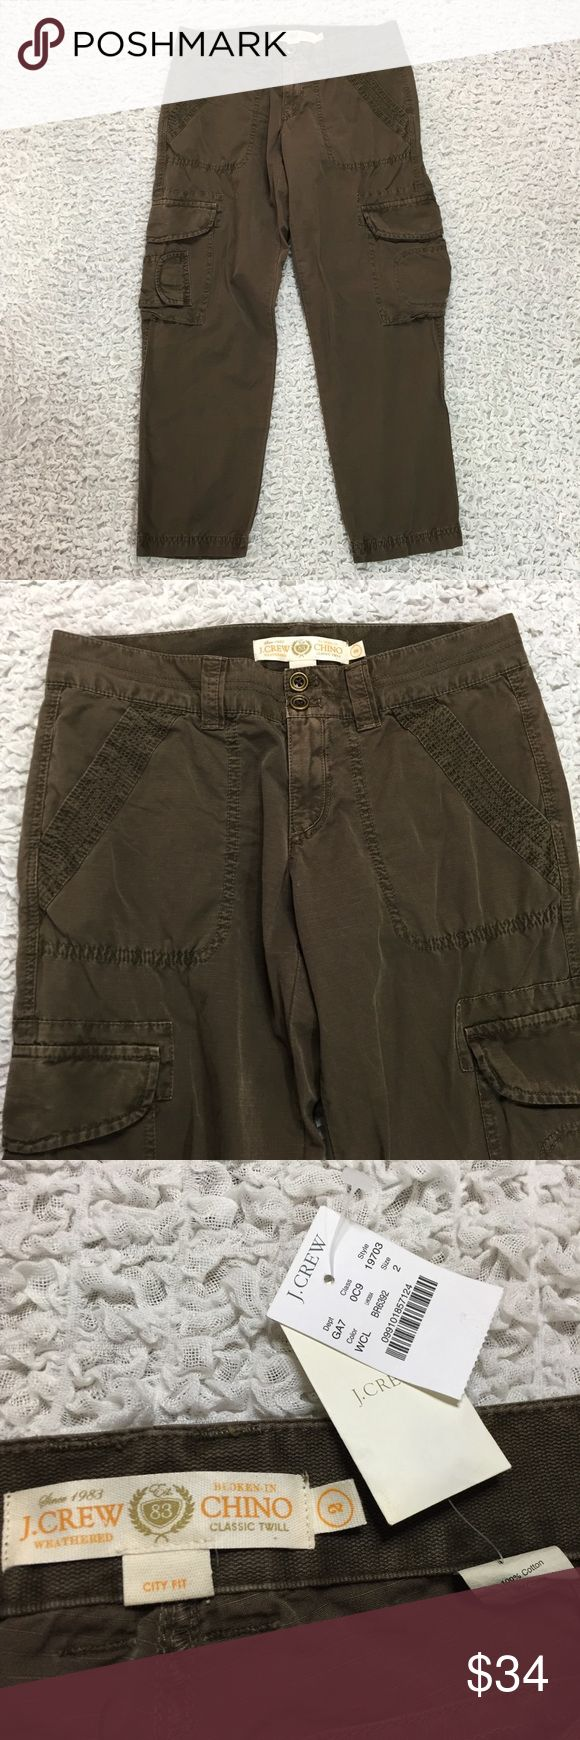 J. Crew city fit broken in chino crop pants 2 NWT J. Crew weathered broken in chino classic twill city fit cropped pants size 2. Price part of the tag is missing. Approximate flat measurements: waist 14.5in, length 33in, inseam 25.5in, front rise 8in. J. Crew Pants Ankle & Cropped